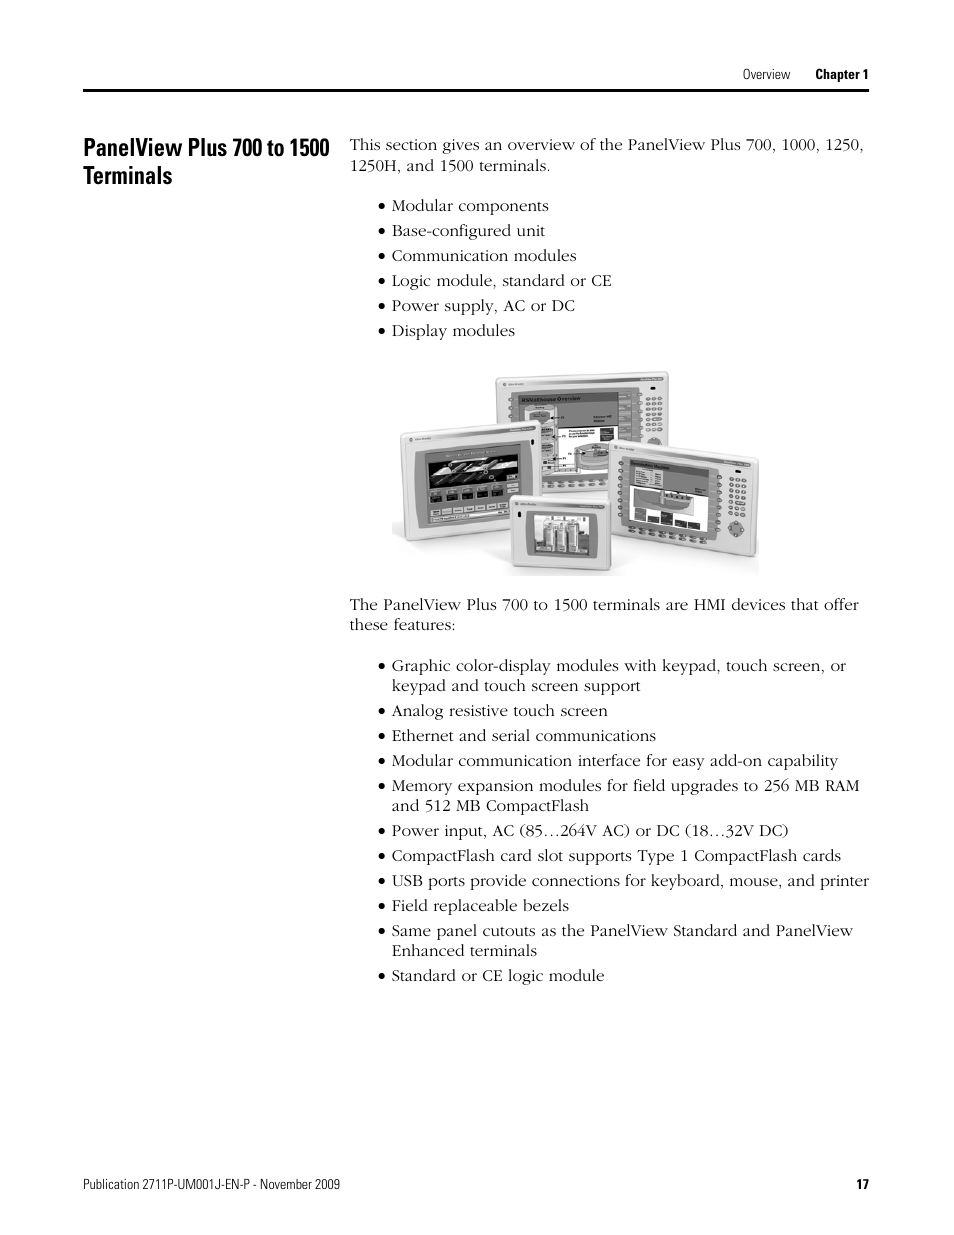 Panelview plus 700 user manual terminals rockwell automation 2711p rh manualsdir com panelview plus 700 to 1500 terminals rockwell automation 2711p panelview plus terminal user manual fandeluxe